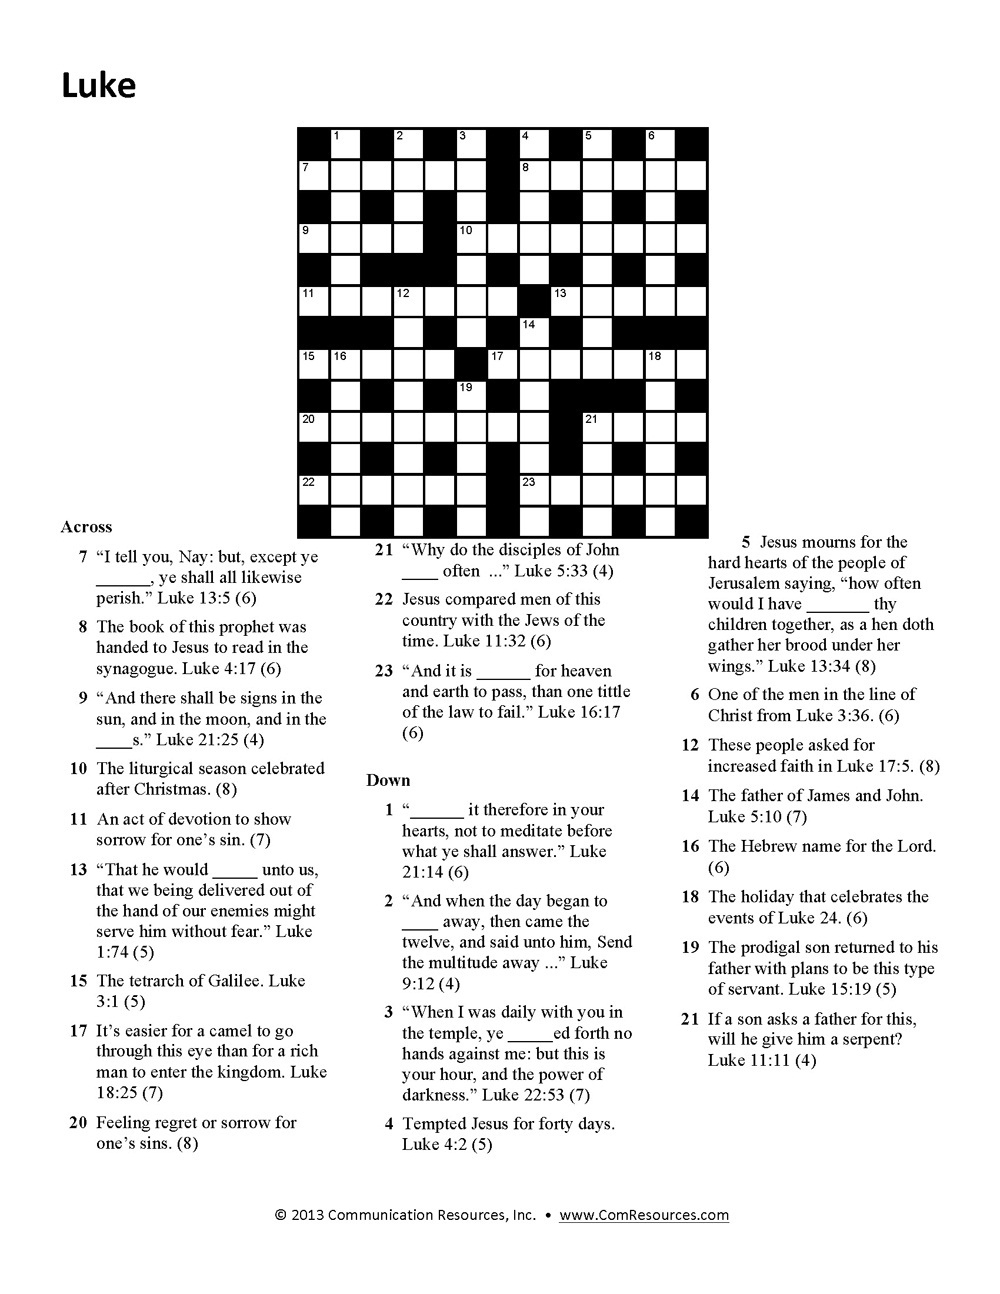 15 Fun Bible Crossword Puzzles | Kittybabylove - Printable Crossword Puzzles About The Bible